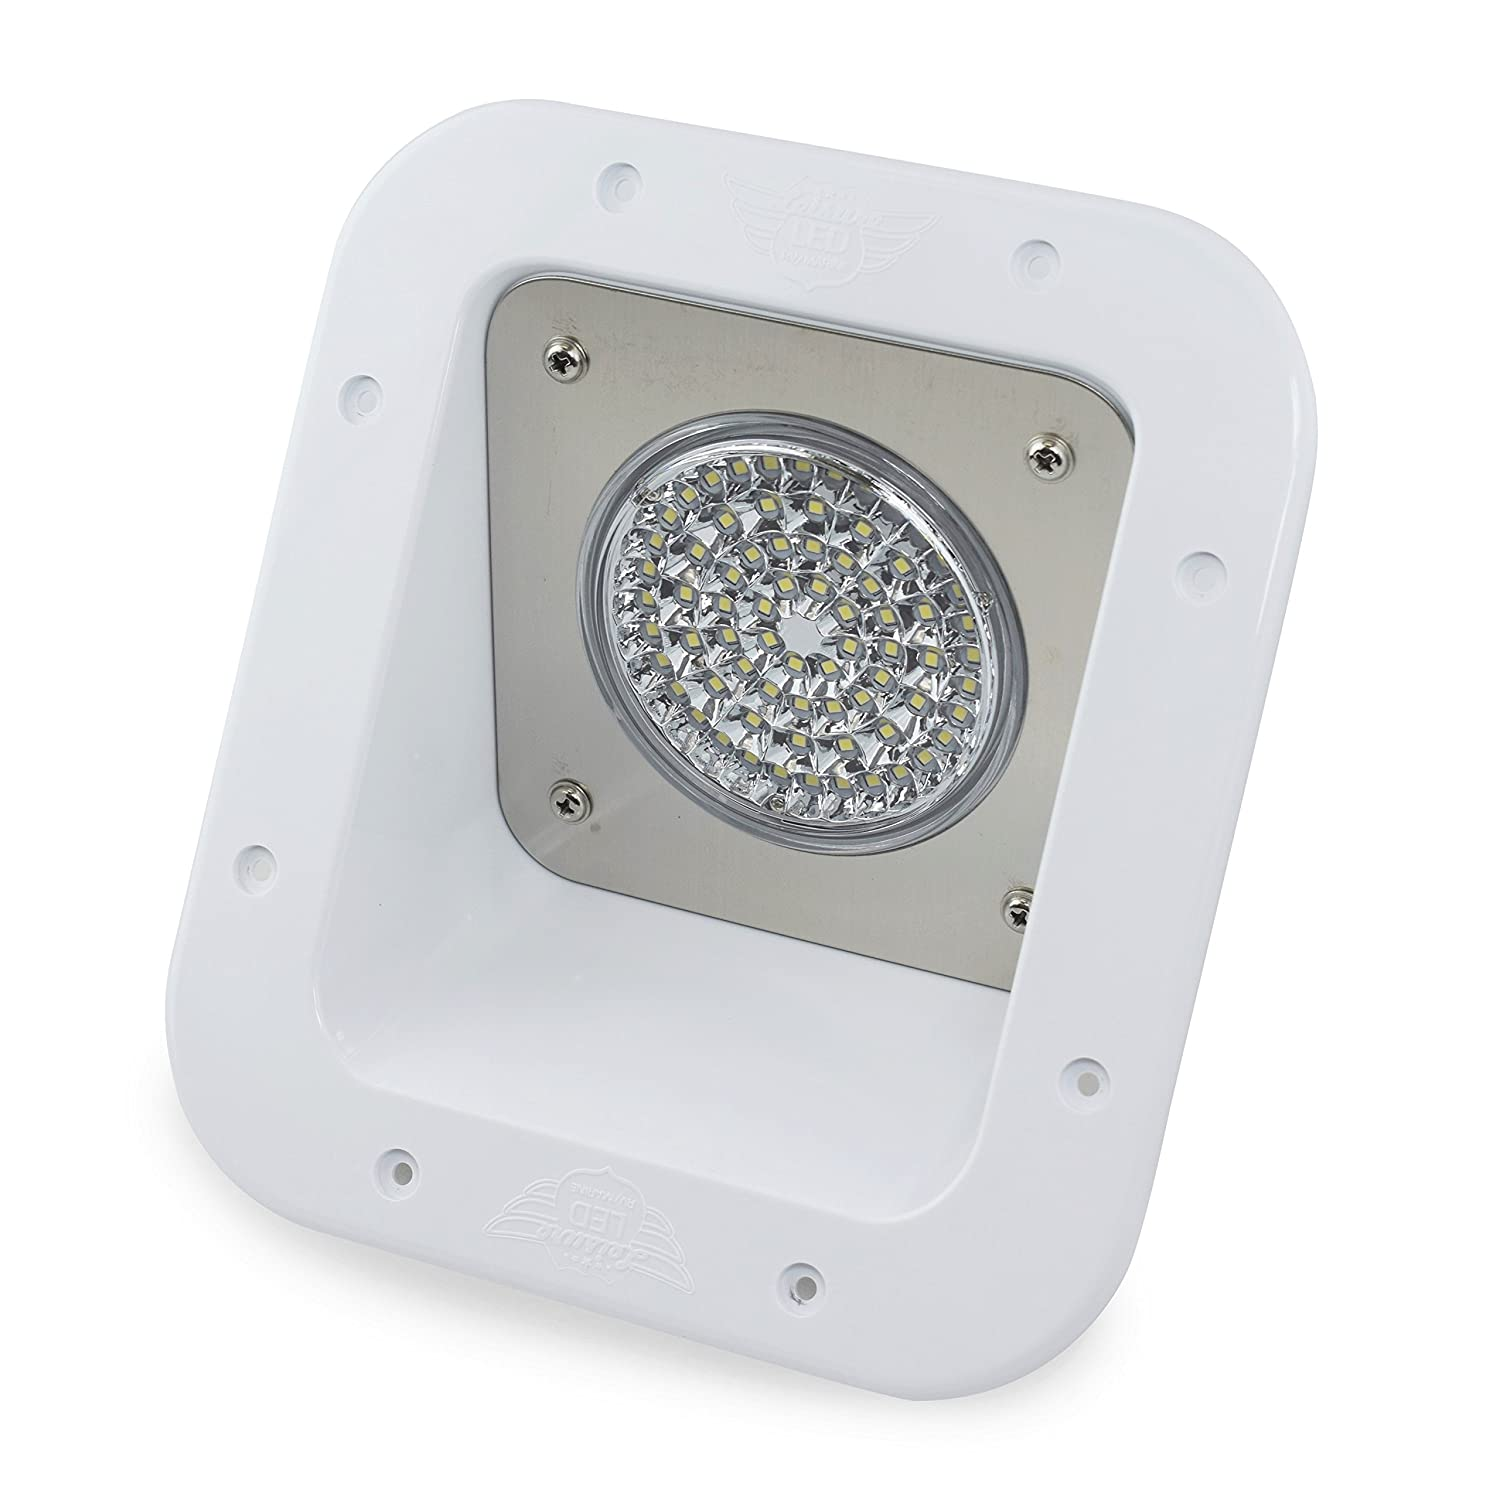 Led rv exterior flood porch utility light white 12v 1100 lumen lighting fixture replacement lighting for weekend warrior rvs trailers campers